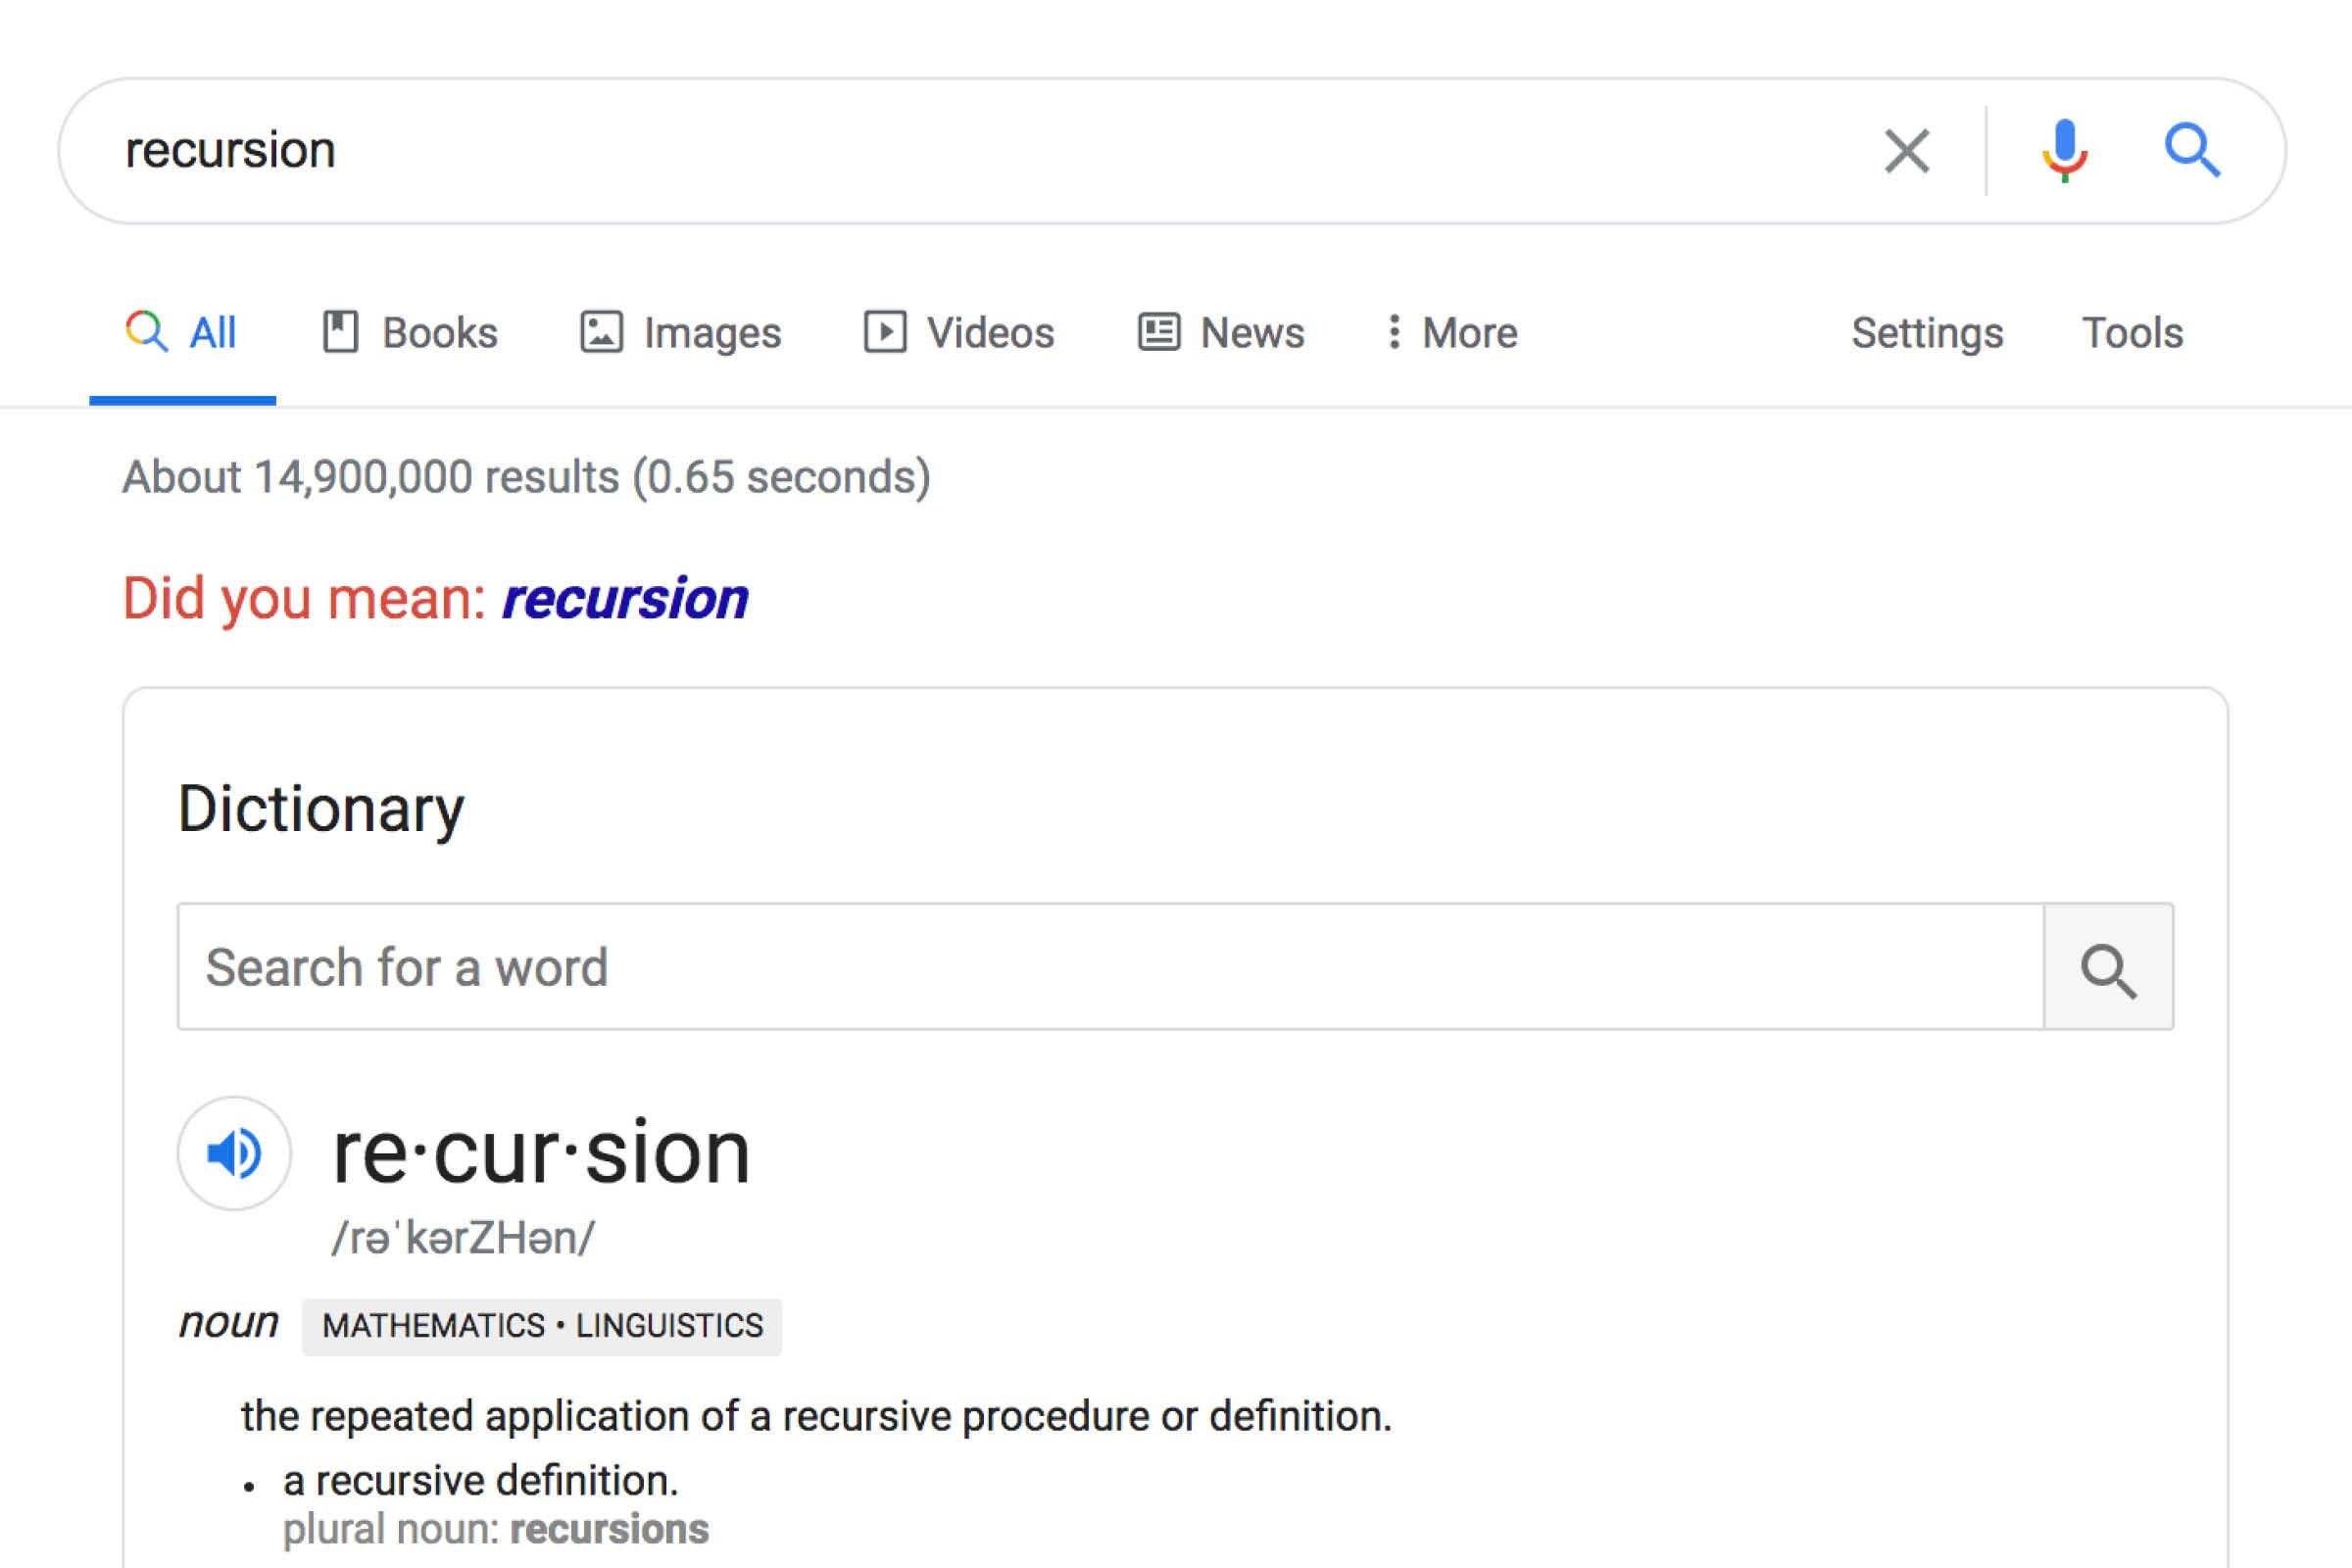 Google: Recursion